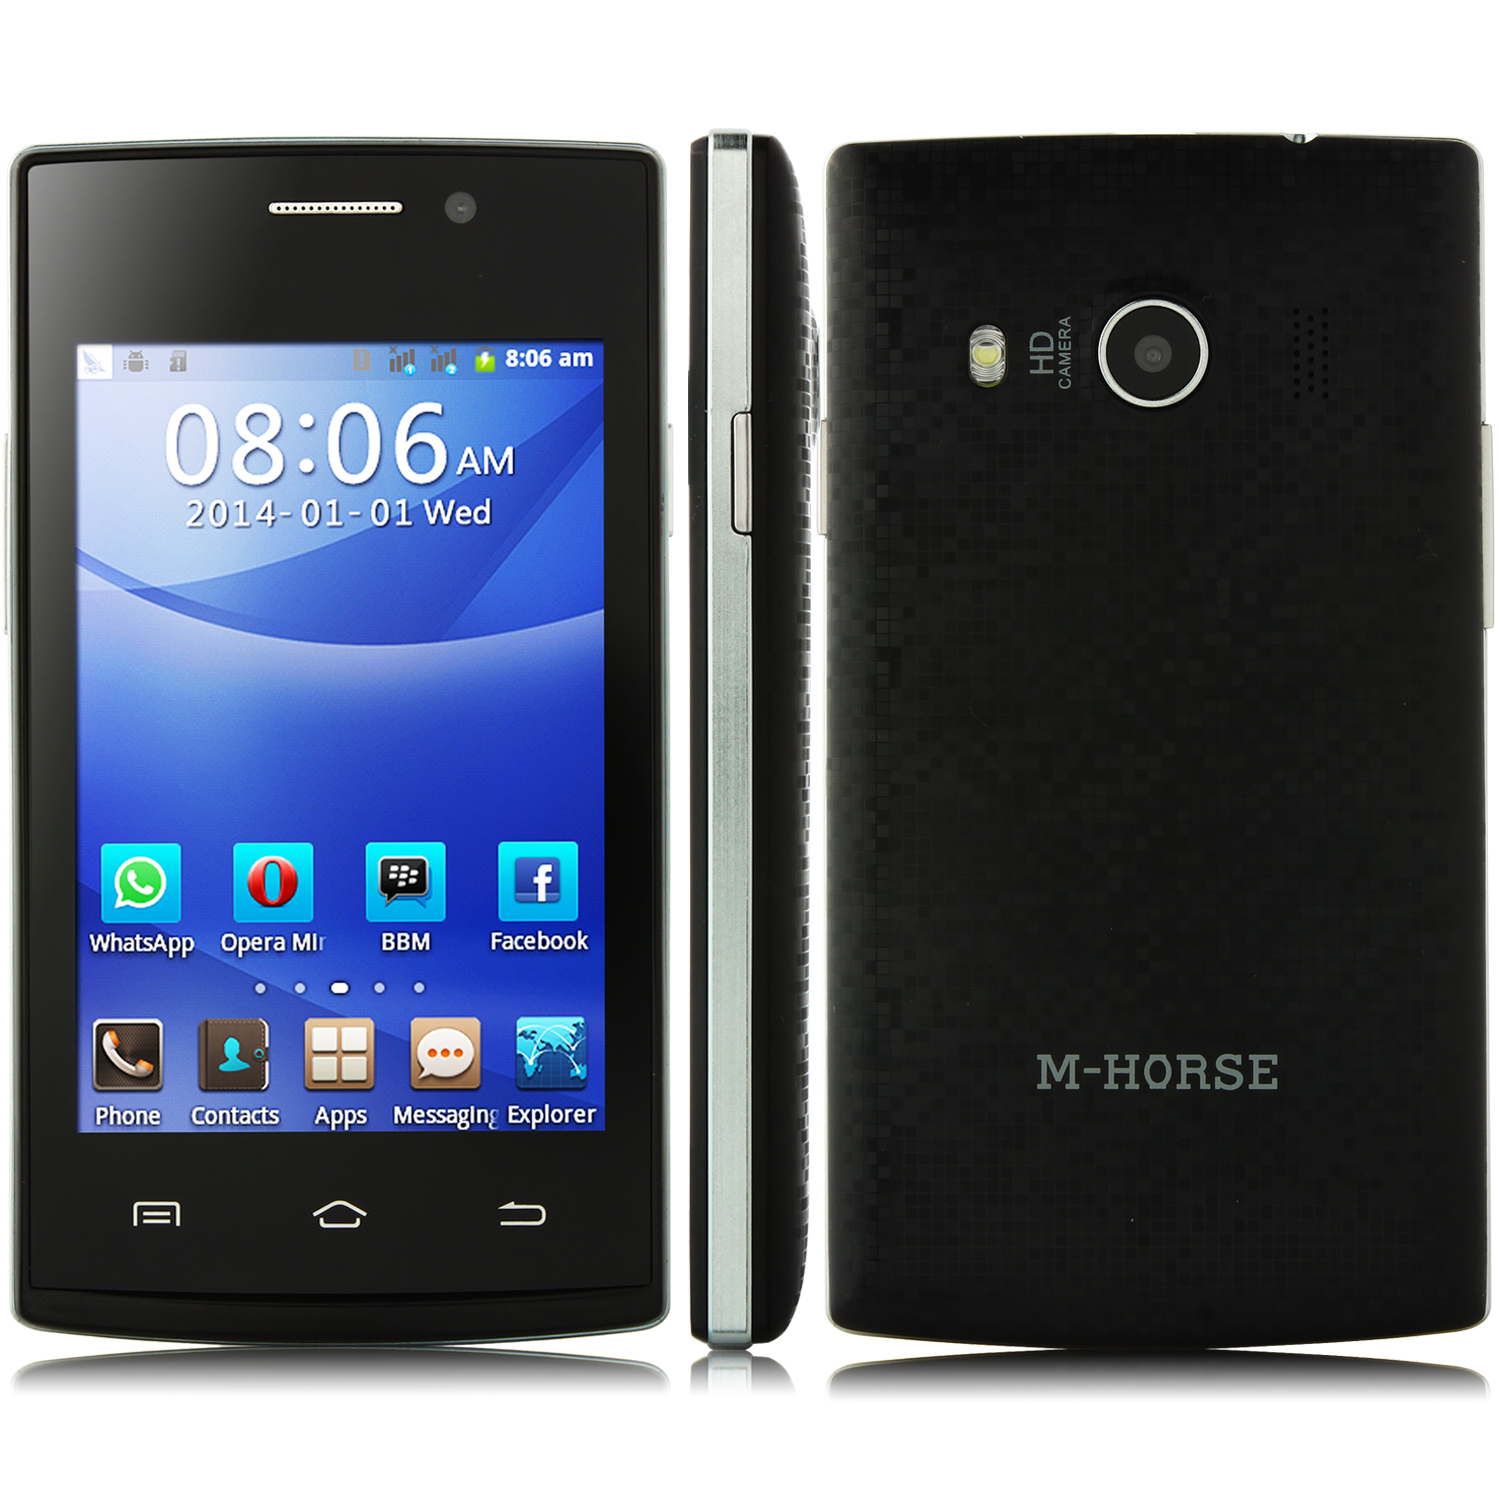 M-HORSE F7 Smartphone Android 4.2 Dual Cameras Dual Card 3.5 Inch Black